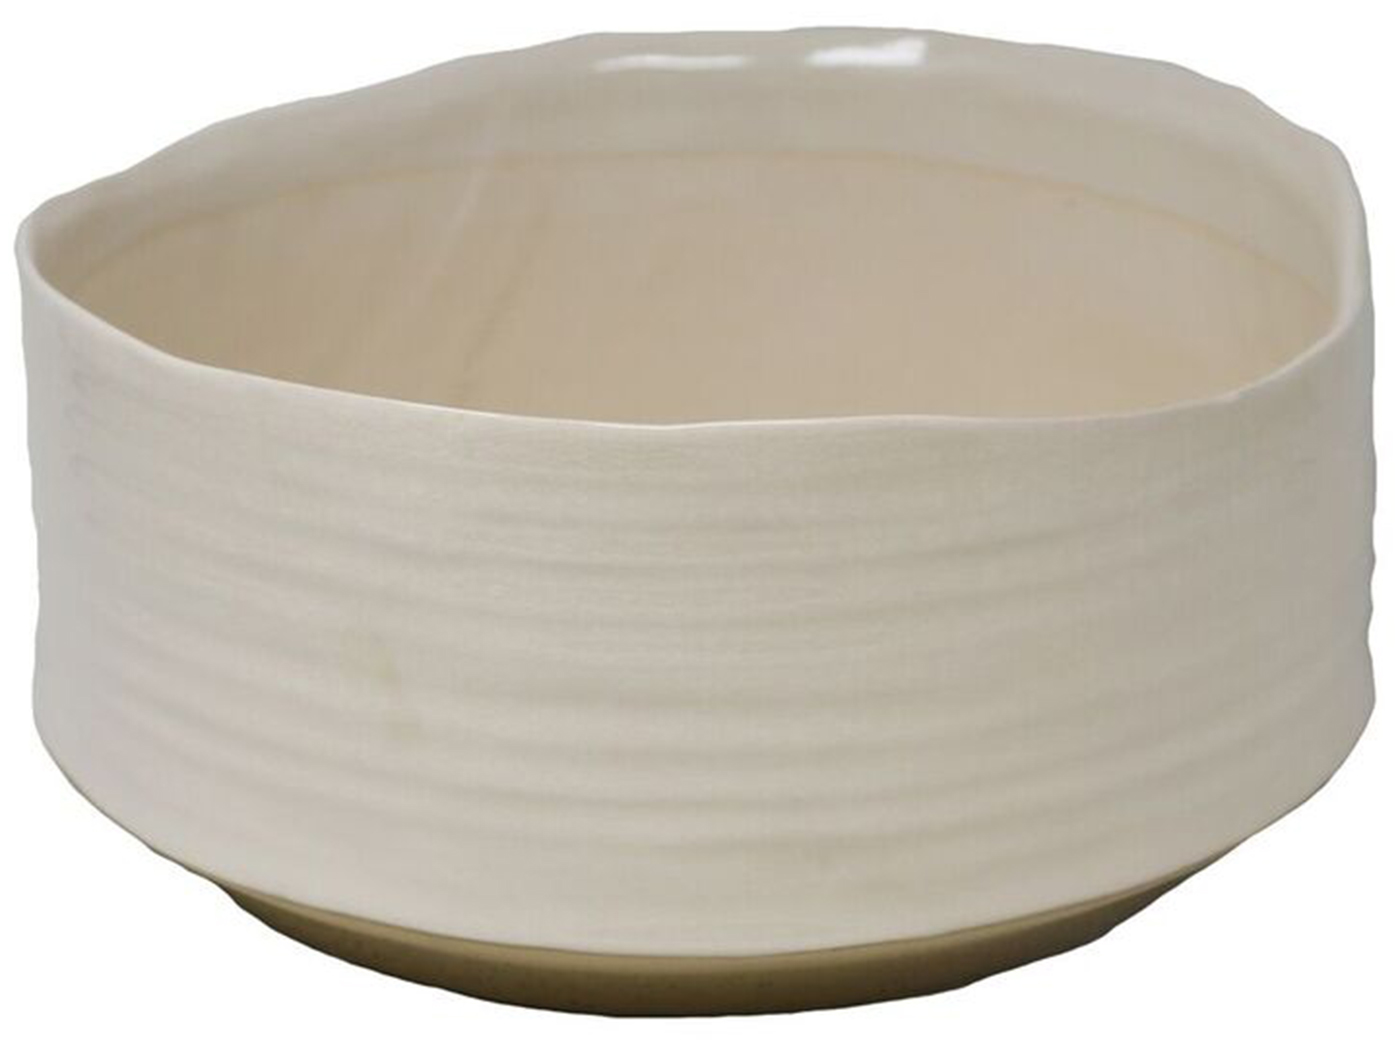 "White Ceramic Planter 11""W x 5""H"